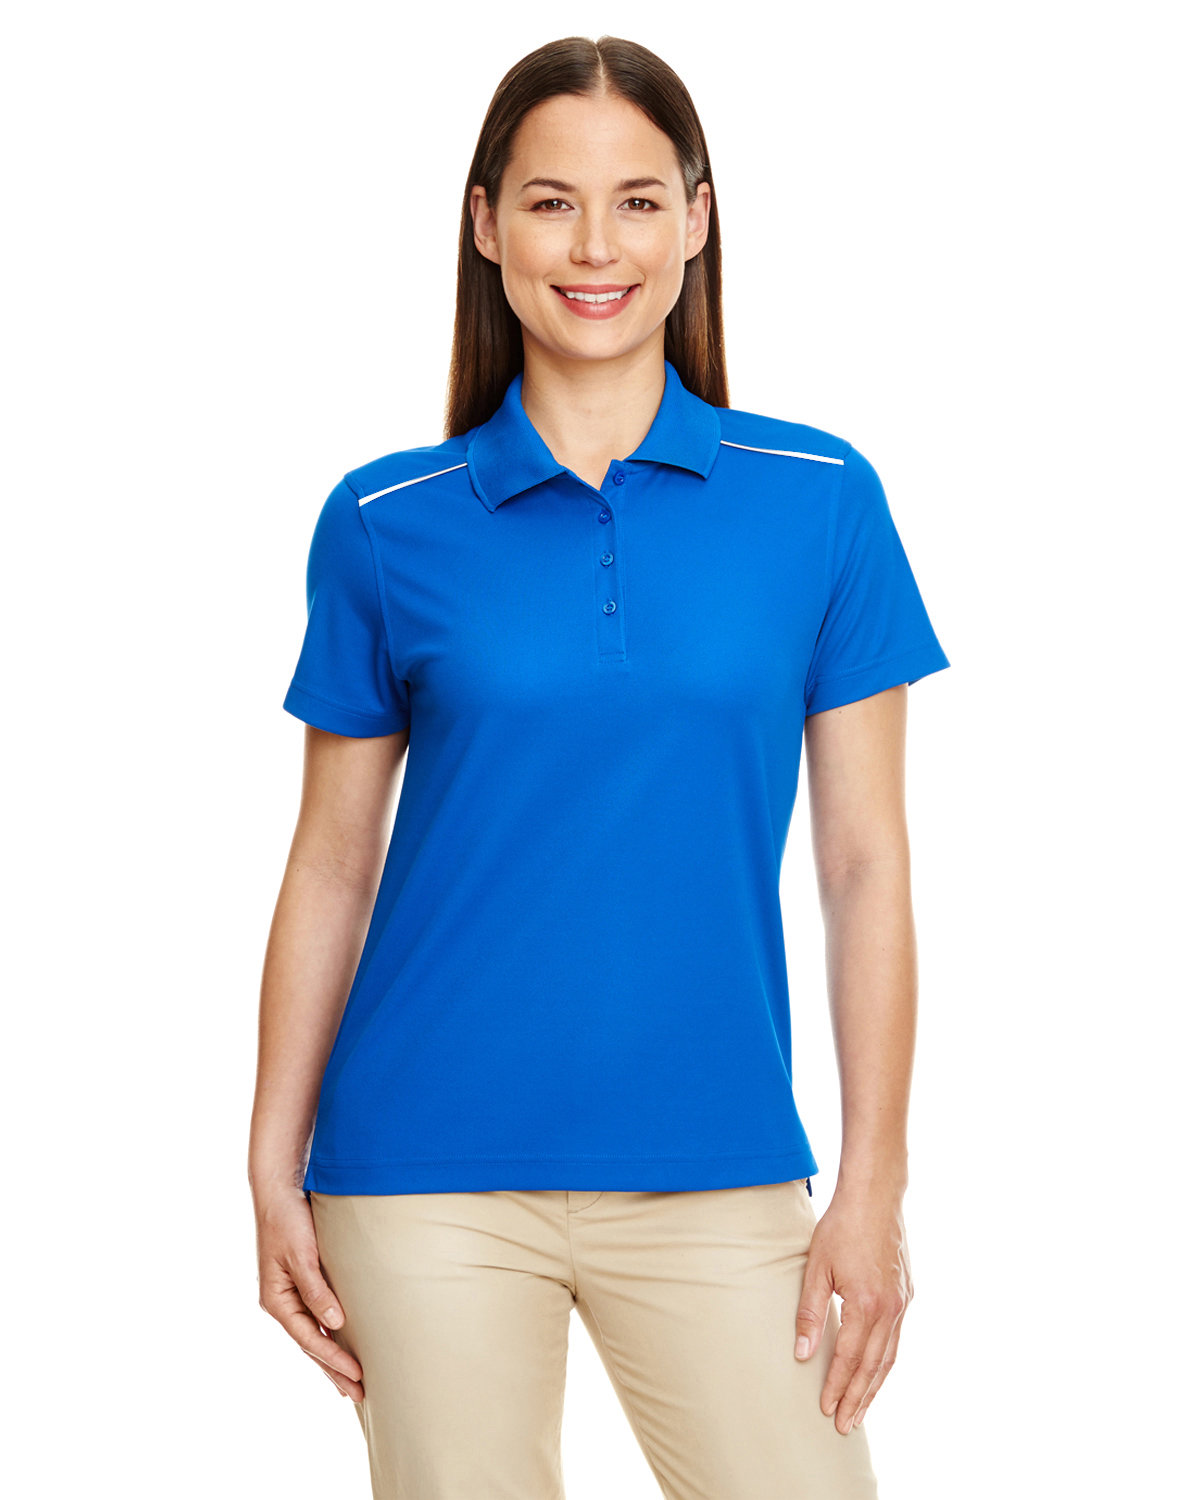 Core 365 Ladies' Radiant Performance Piqué Polo with Reflective Piping TRUE ROYAL